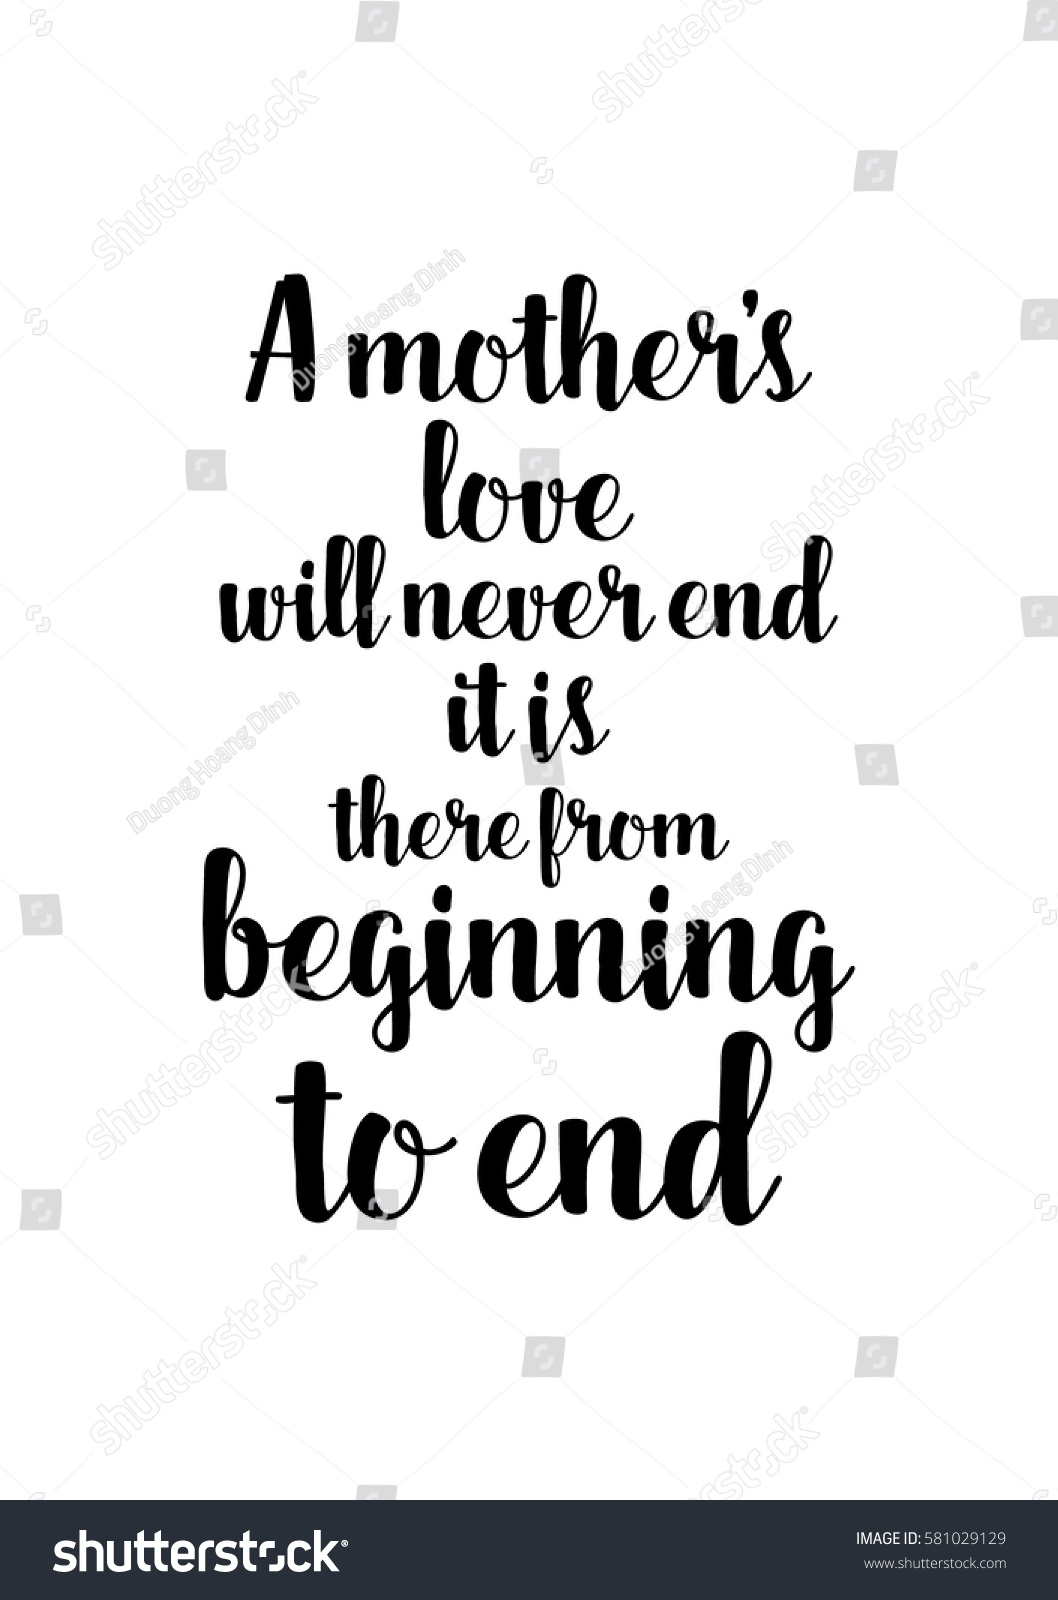 A Mothers Love Quotes Black Calligraphy Inscription Day Quote Day Stock Vector 581029129